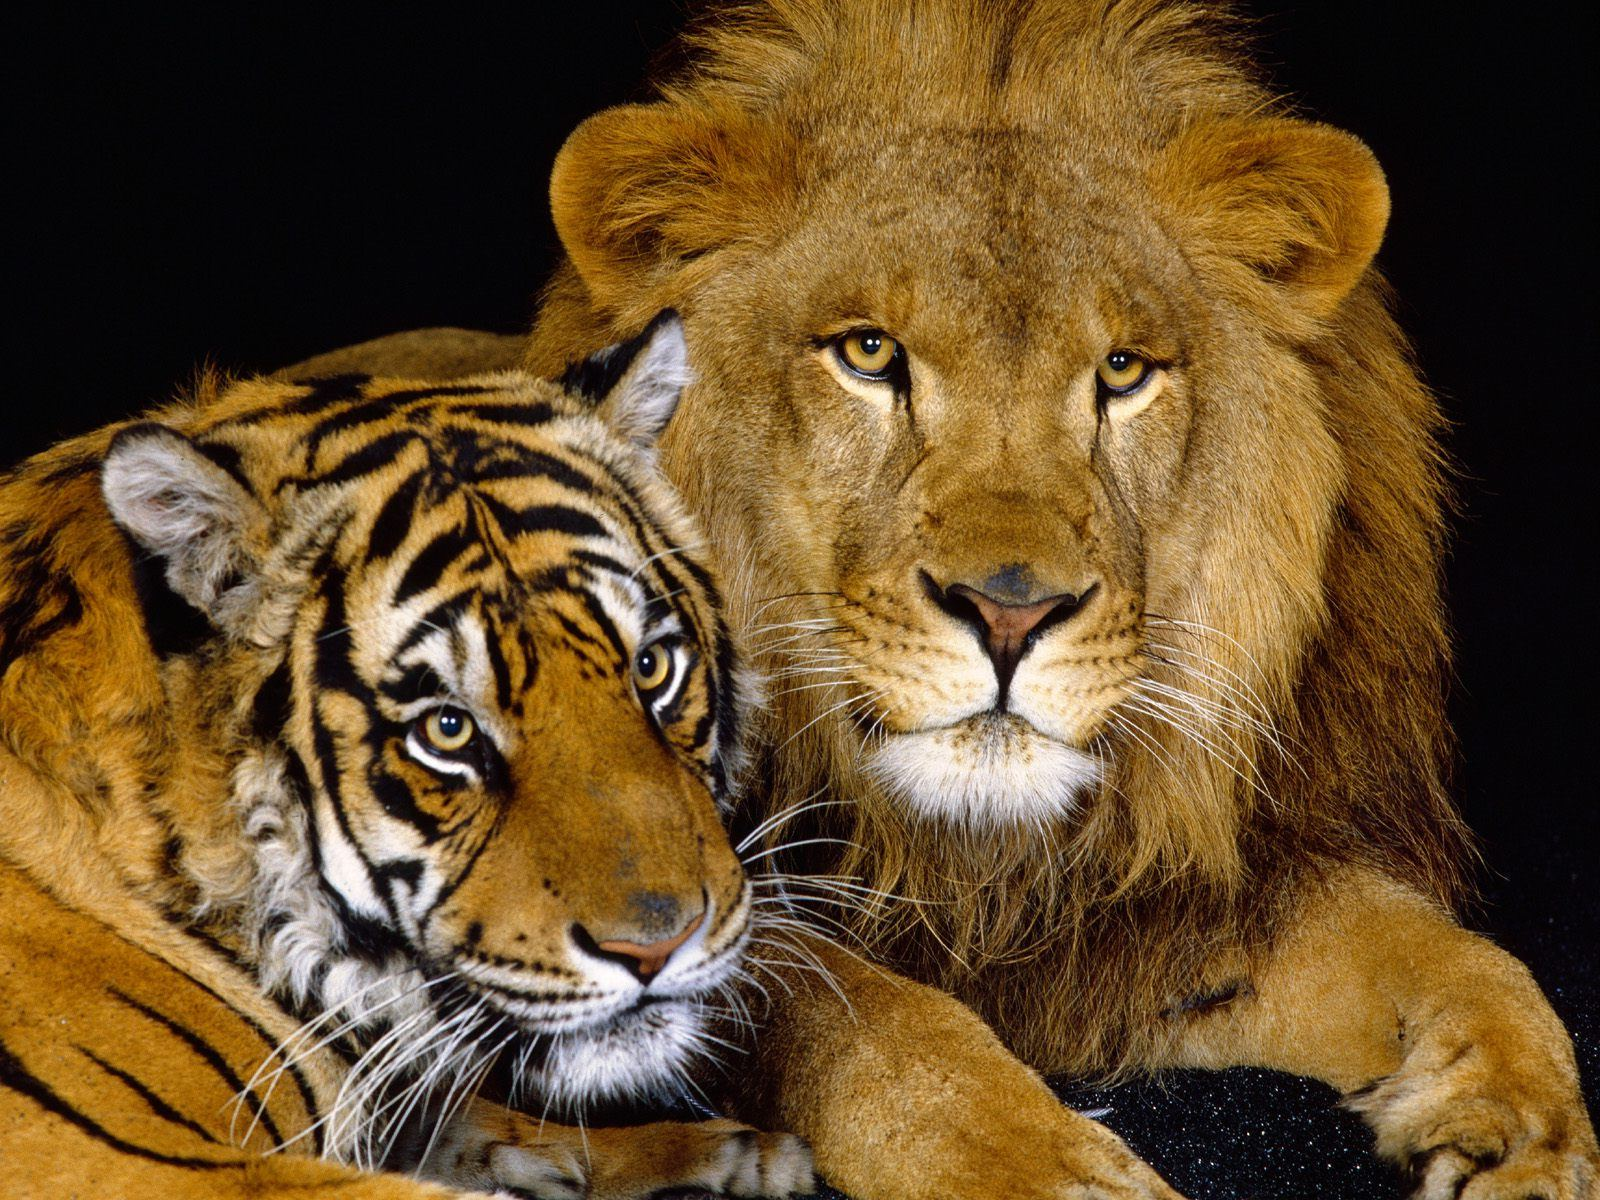 tiger and lion wallpaper #22